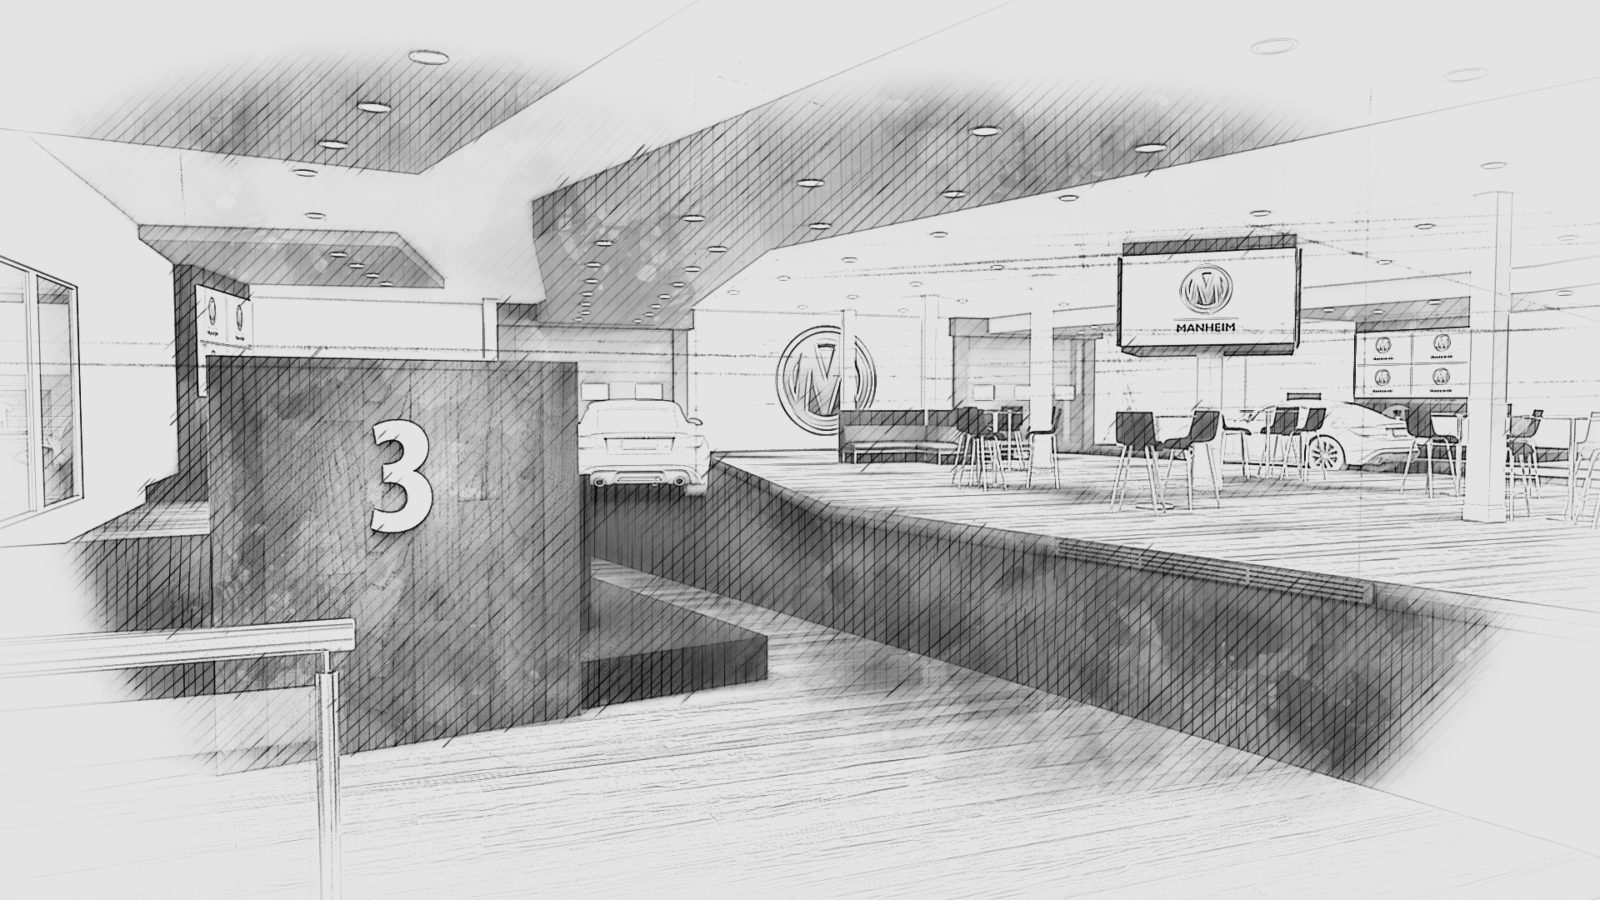 Concepts for Manheim Bruntingthorpe, created by Katapult guest experience agency